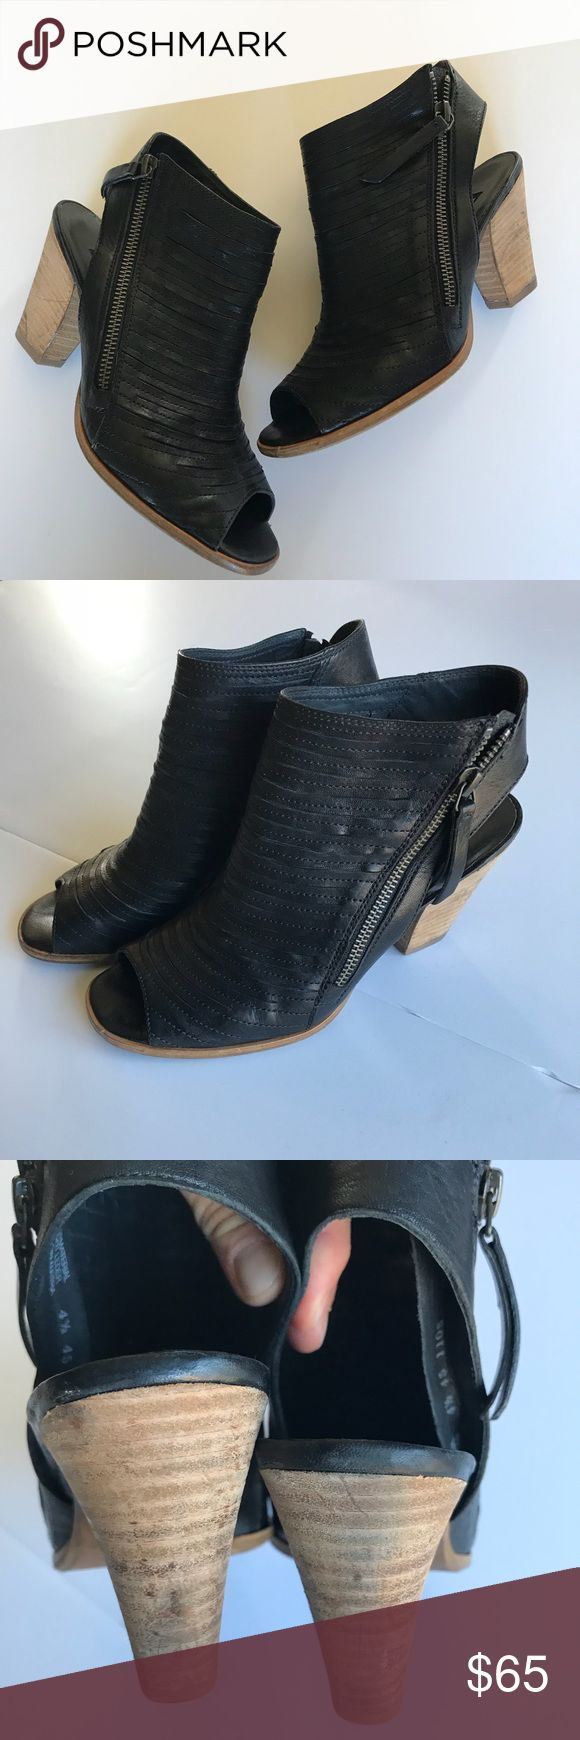 Paul Green peep toe heels Side zip, stitched leather upper, stacked heel Paul Green Shoes Heels